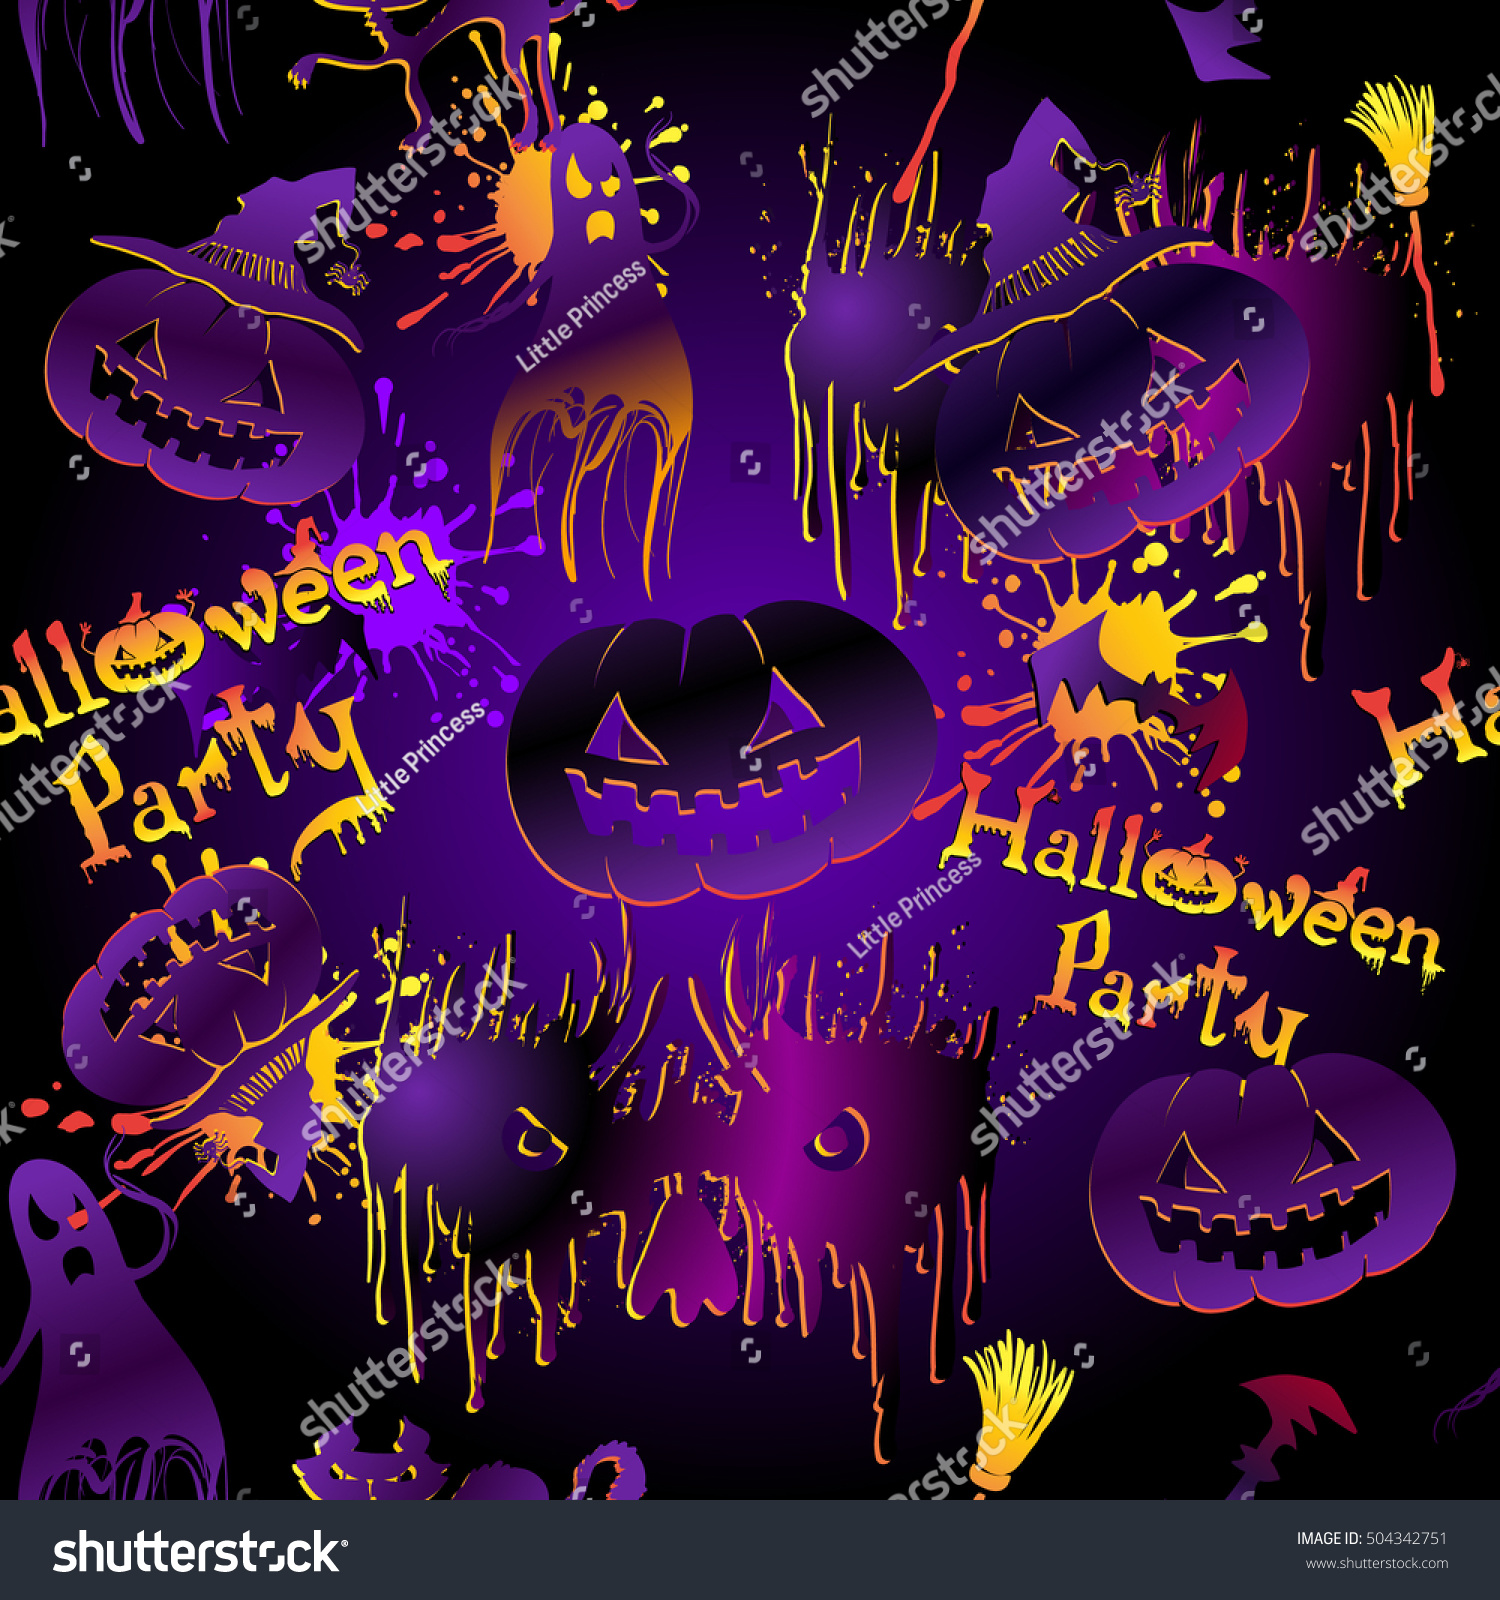 Most Inspiring Wallpaper Halloween Neon - stock-vector-abstract-holiday-banner-with-happy-halloween-calligraphy-background-in-neon-colors-with-silhouette-504342751  Pic_97913.jpg